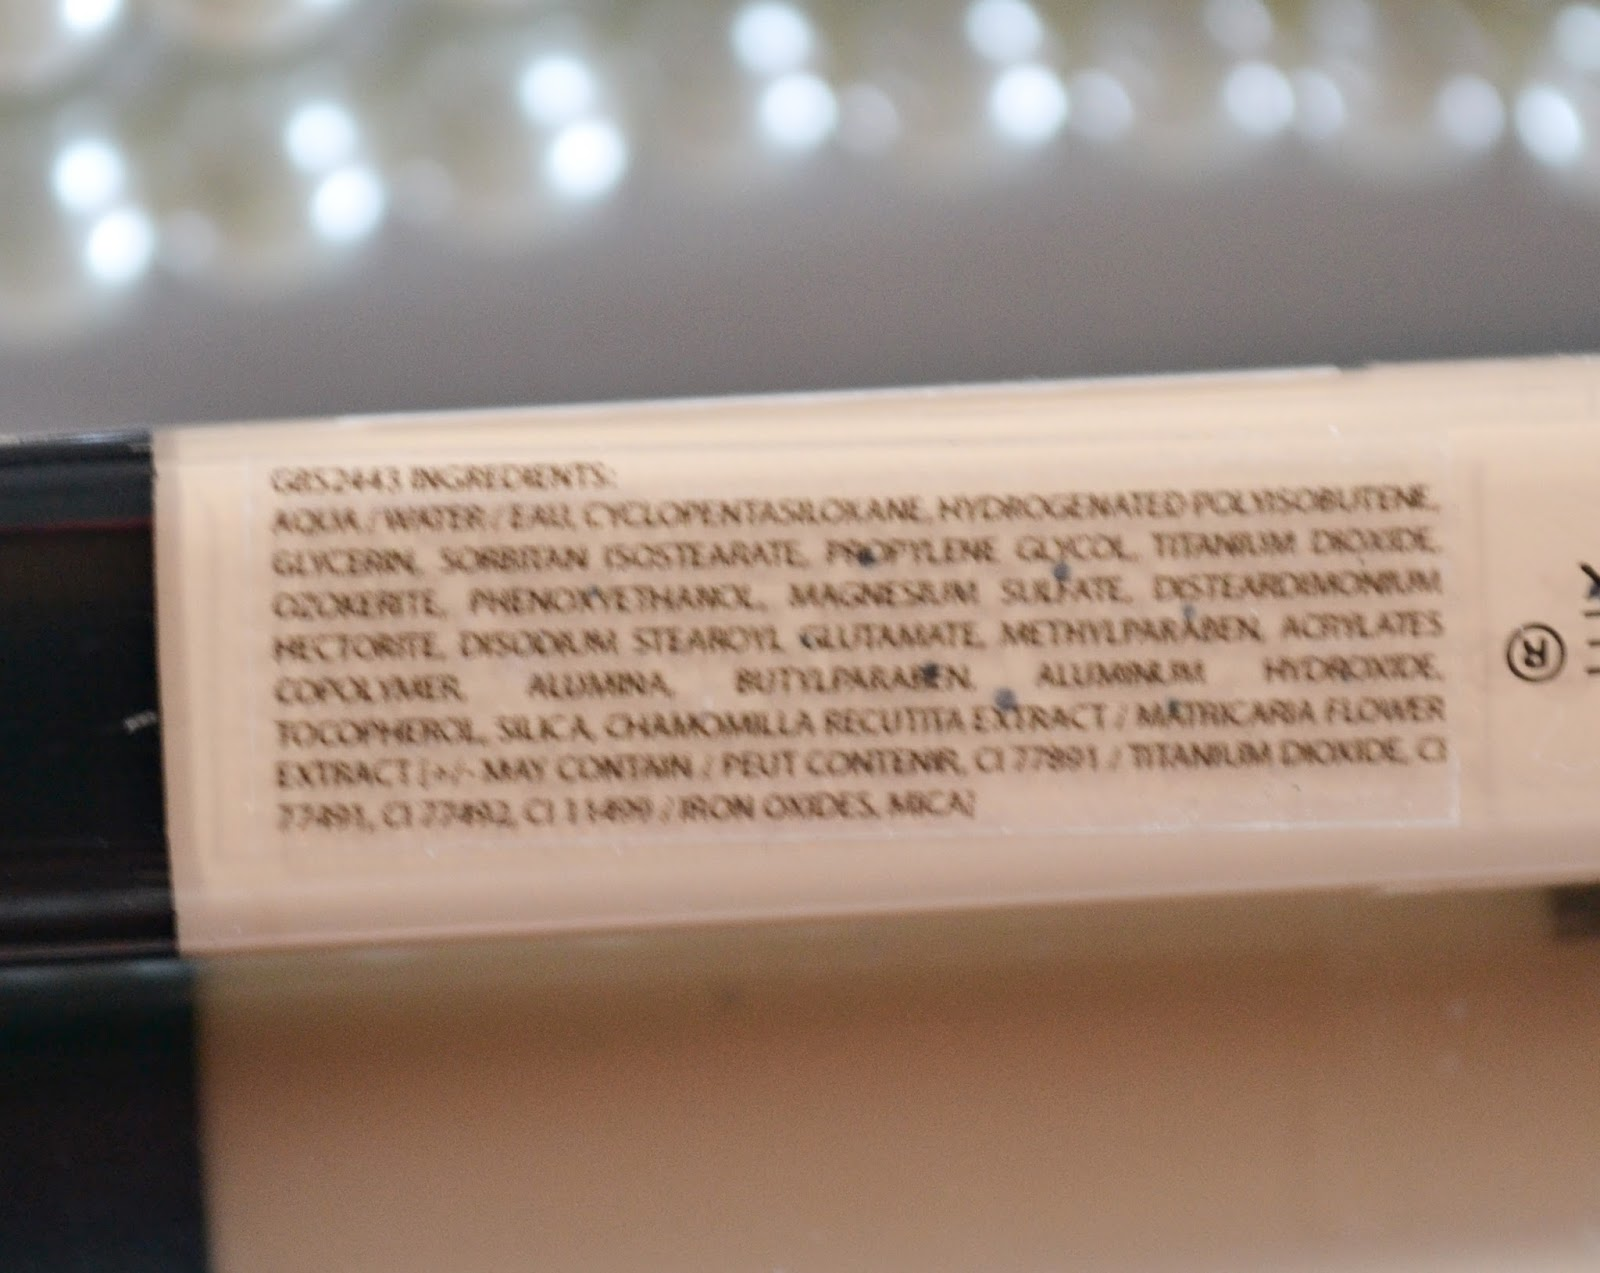 Maybelline Fit Me Concealer In 20 All Shades Swatches About Medium Ingredients